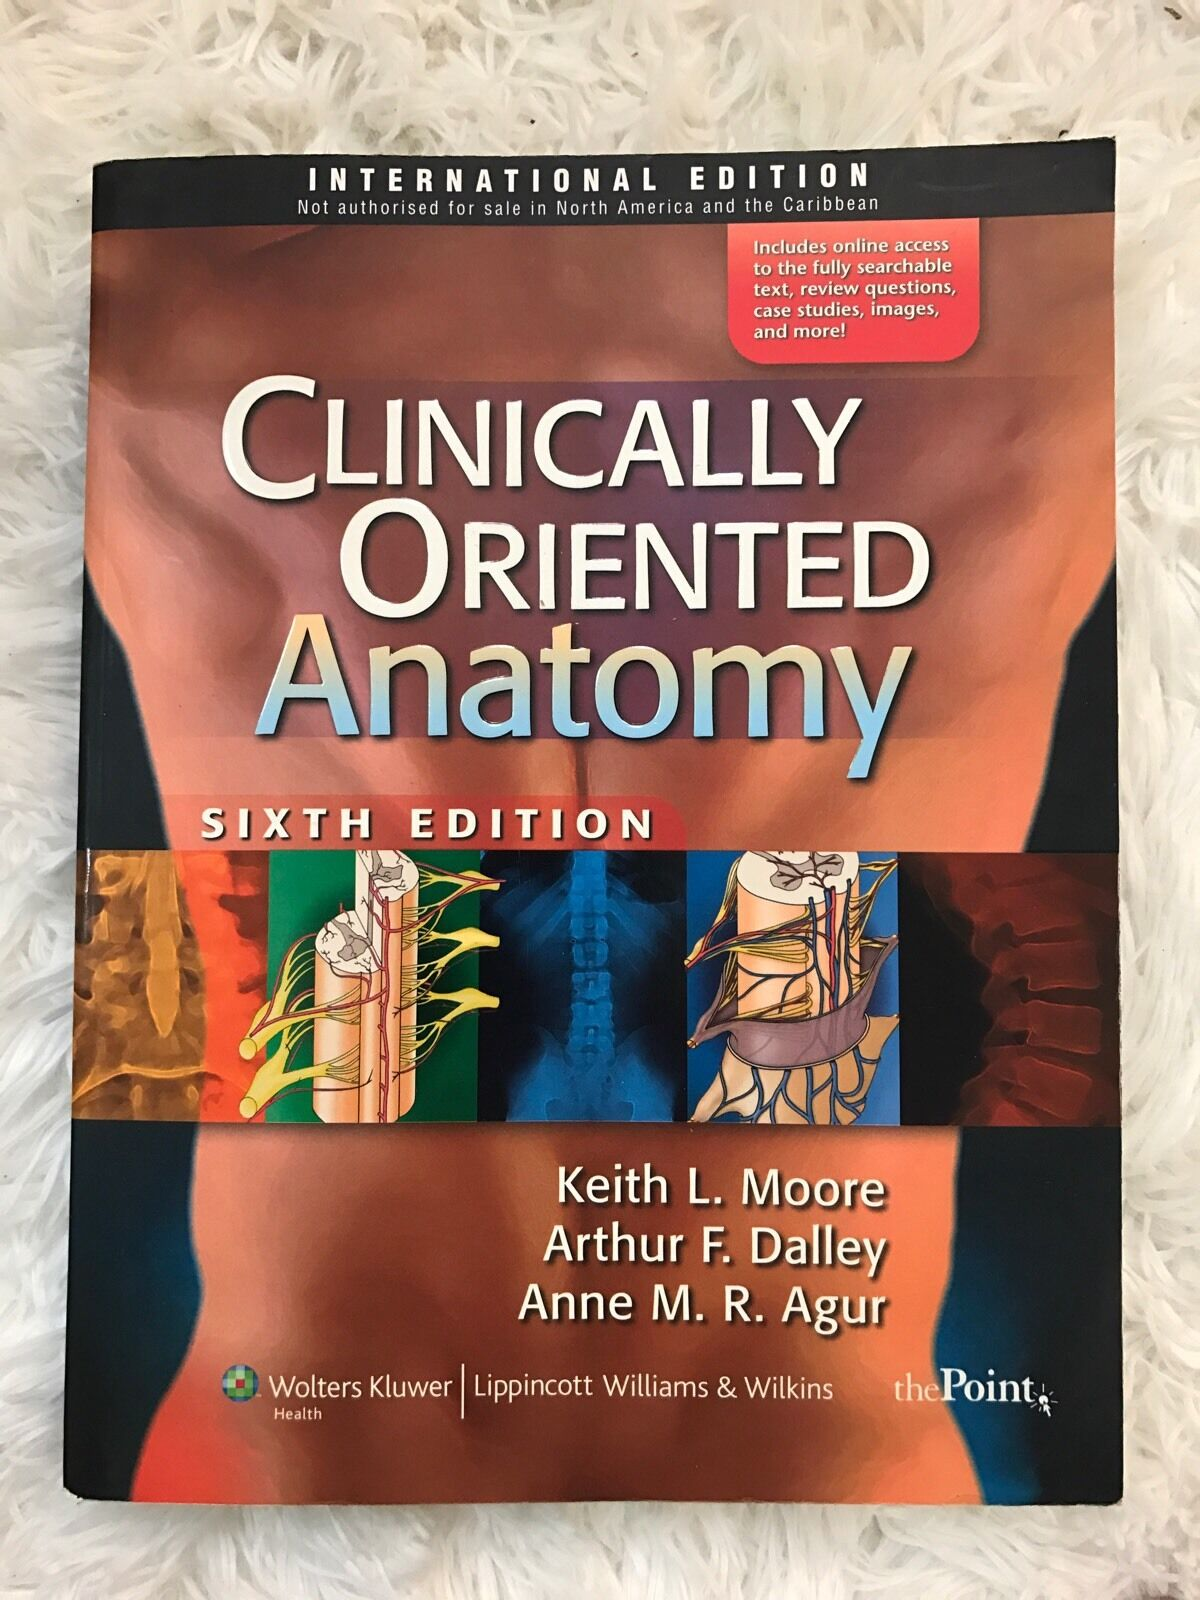 Clinically Oriented Anatomy by Keith Moore [152500448759] - $30.00 ...